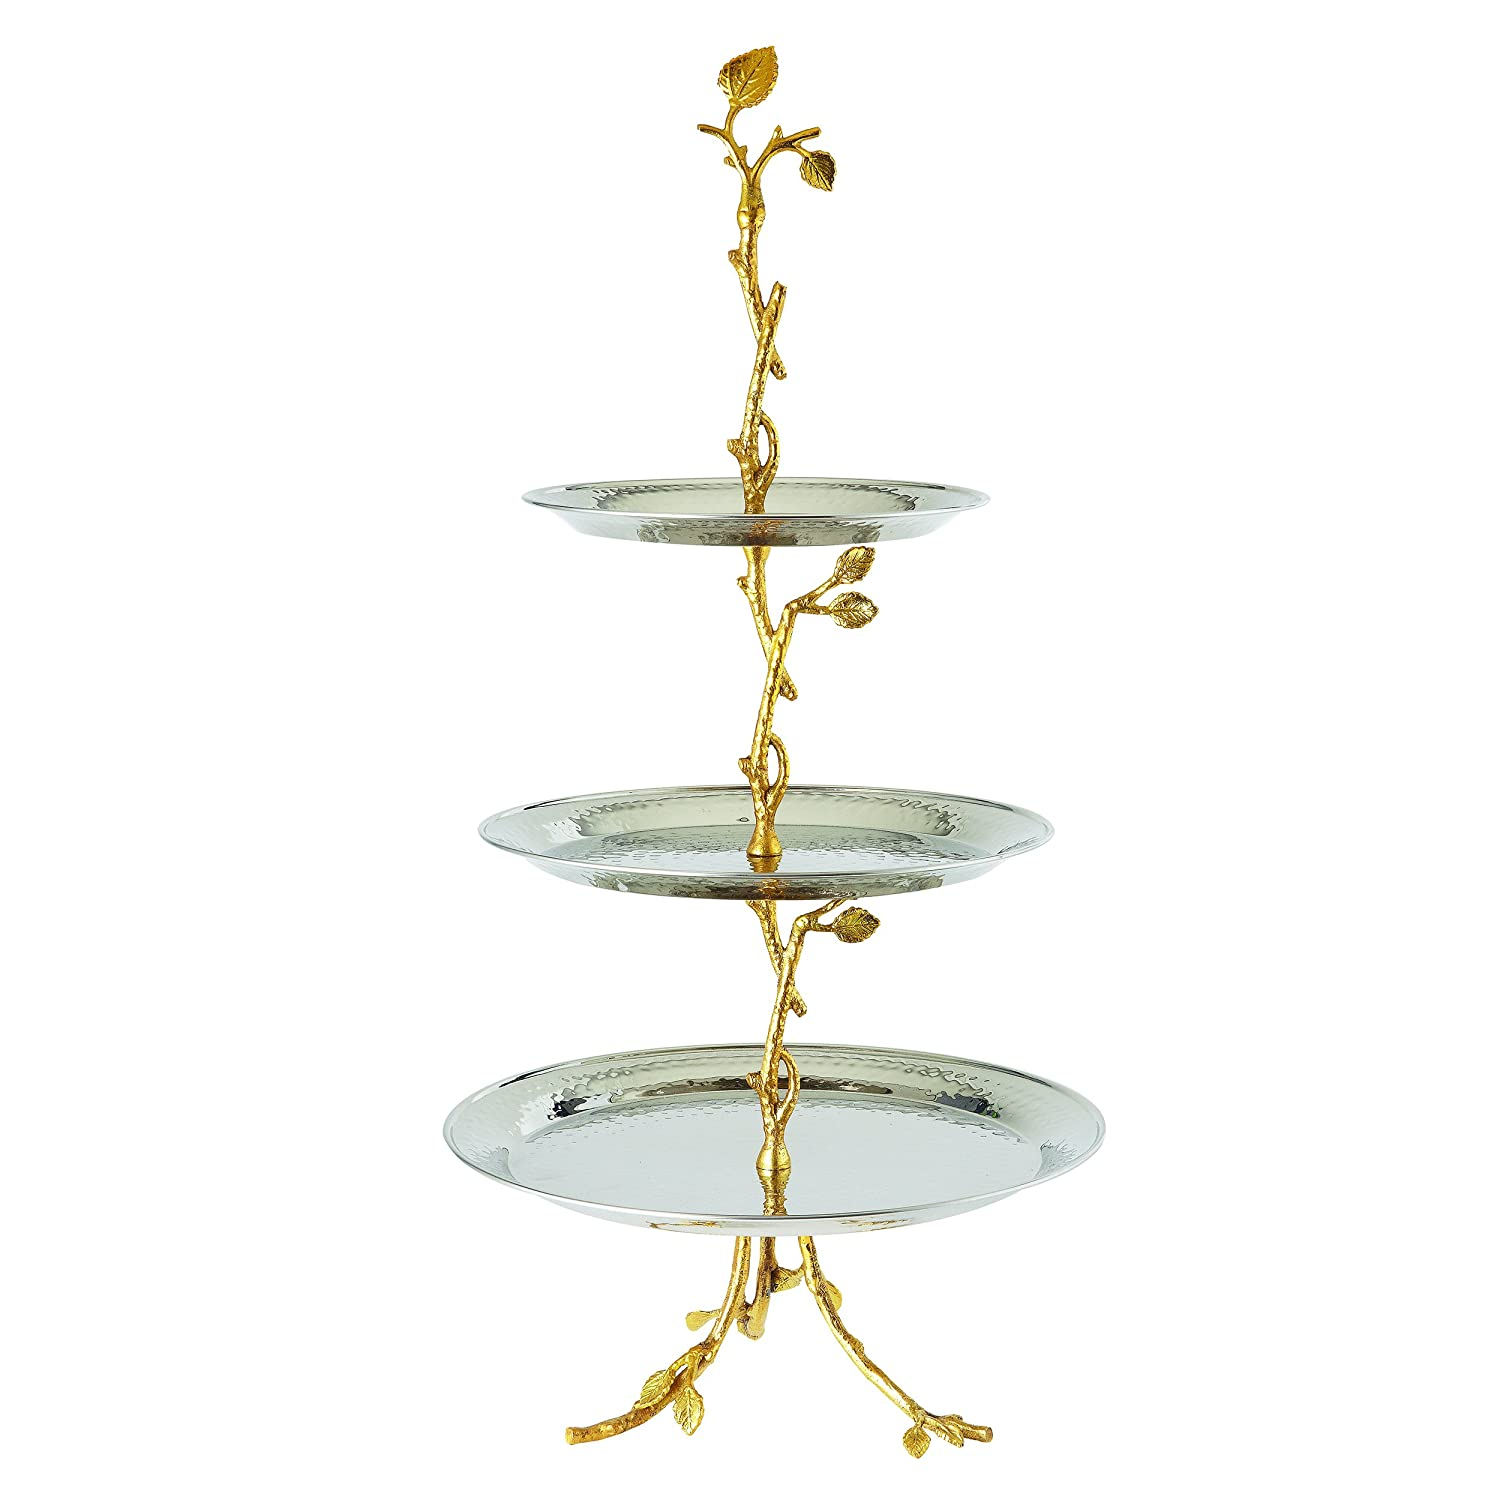 Enesco ENEYA HK70033 Tray 3-Tier Gilded Leaf Kit Utensil, Gold/Silver Leeber Limited USA